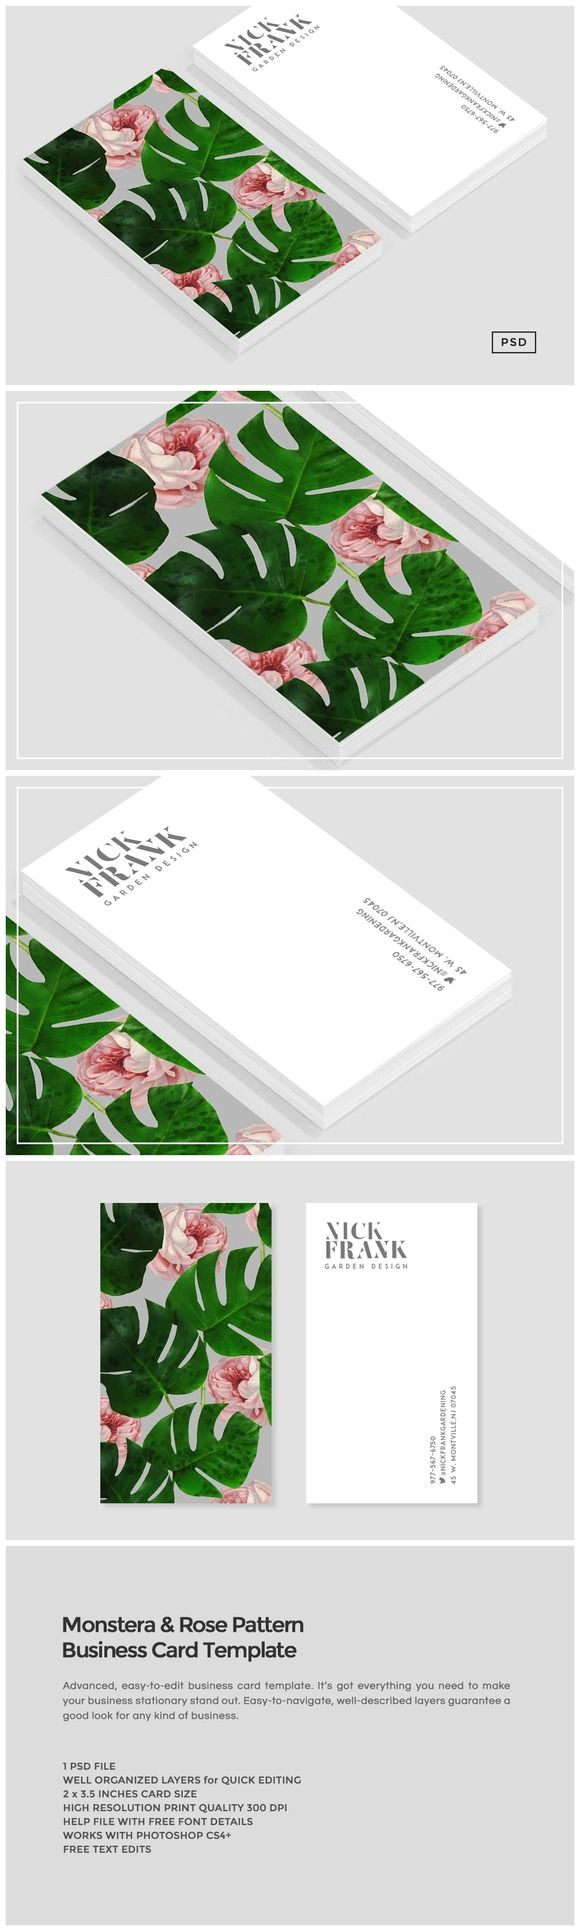 Monstera Rose Pattern Business Card by Design Co. on Creative Market